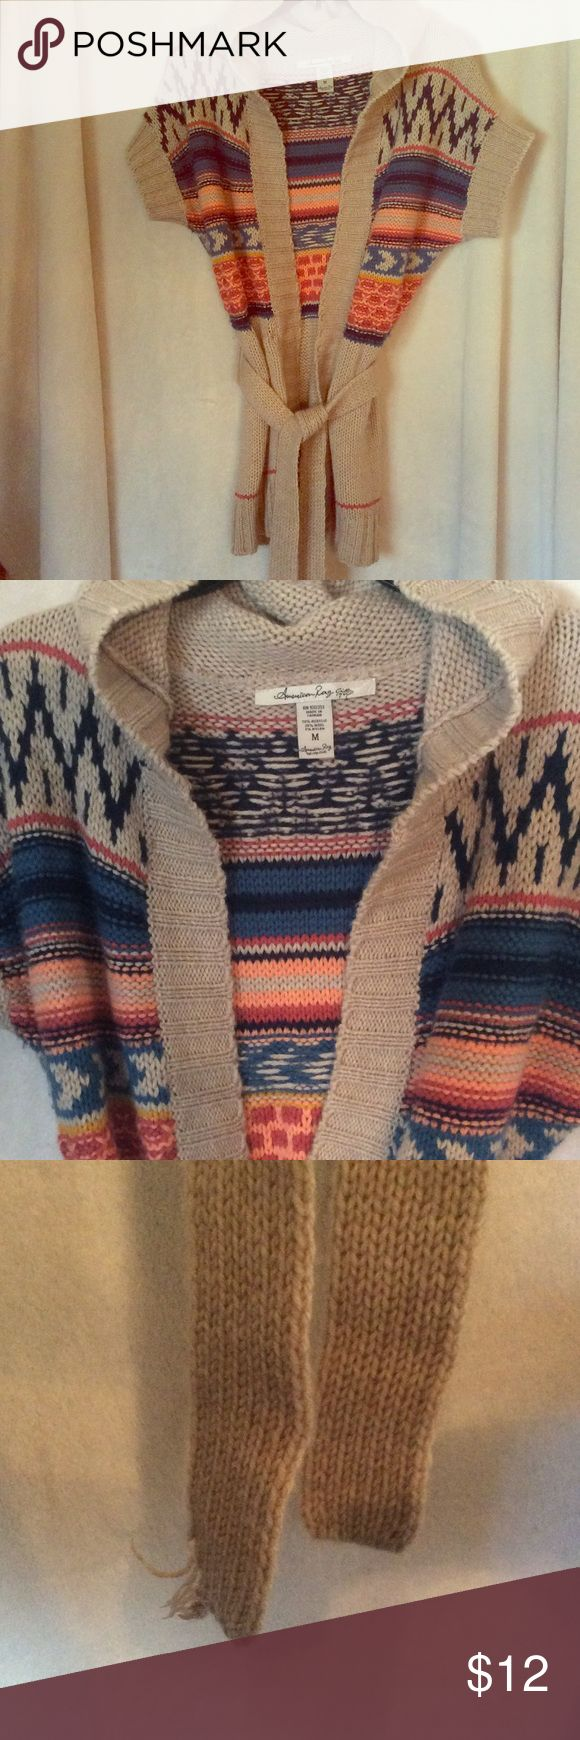 American Rag Aztec Sweater Cardigan M 💙 Cute American Rag Size Medium Sweater Cardigan Only flaw is the end of the belt easy fix if you know what your doing: hence the price :) Enjoy! American Rag Sweaters Cardigans